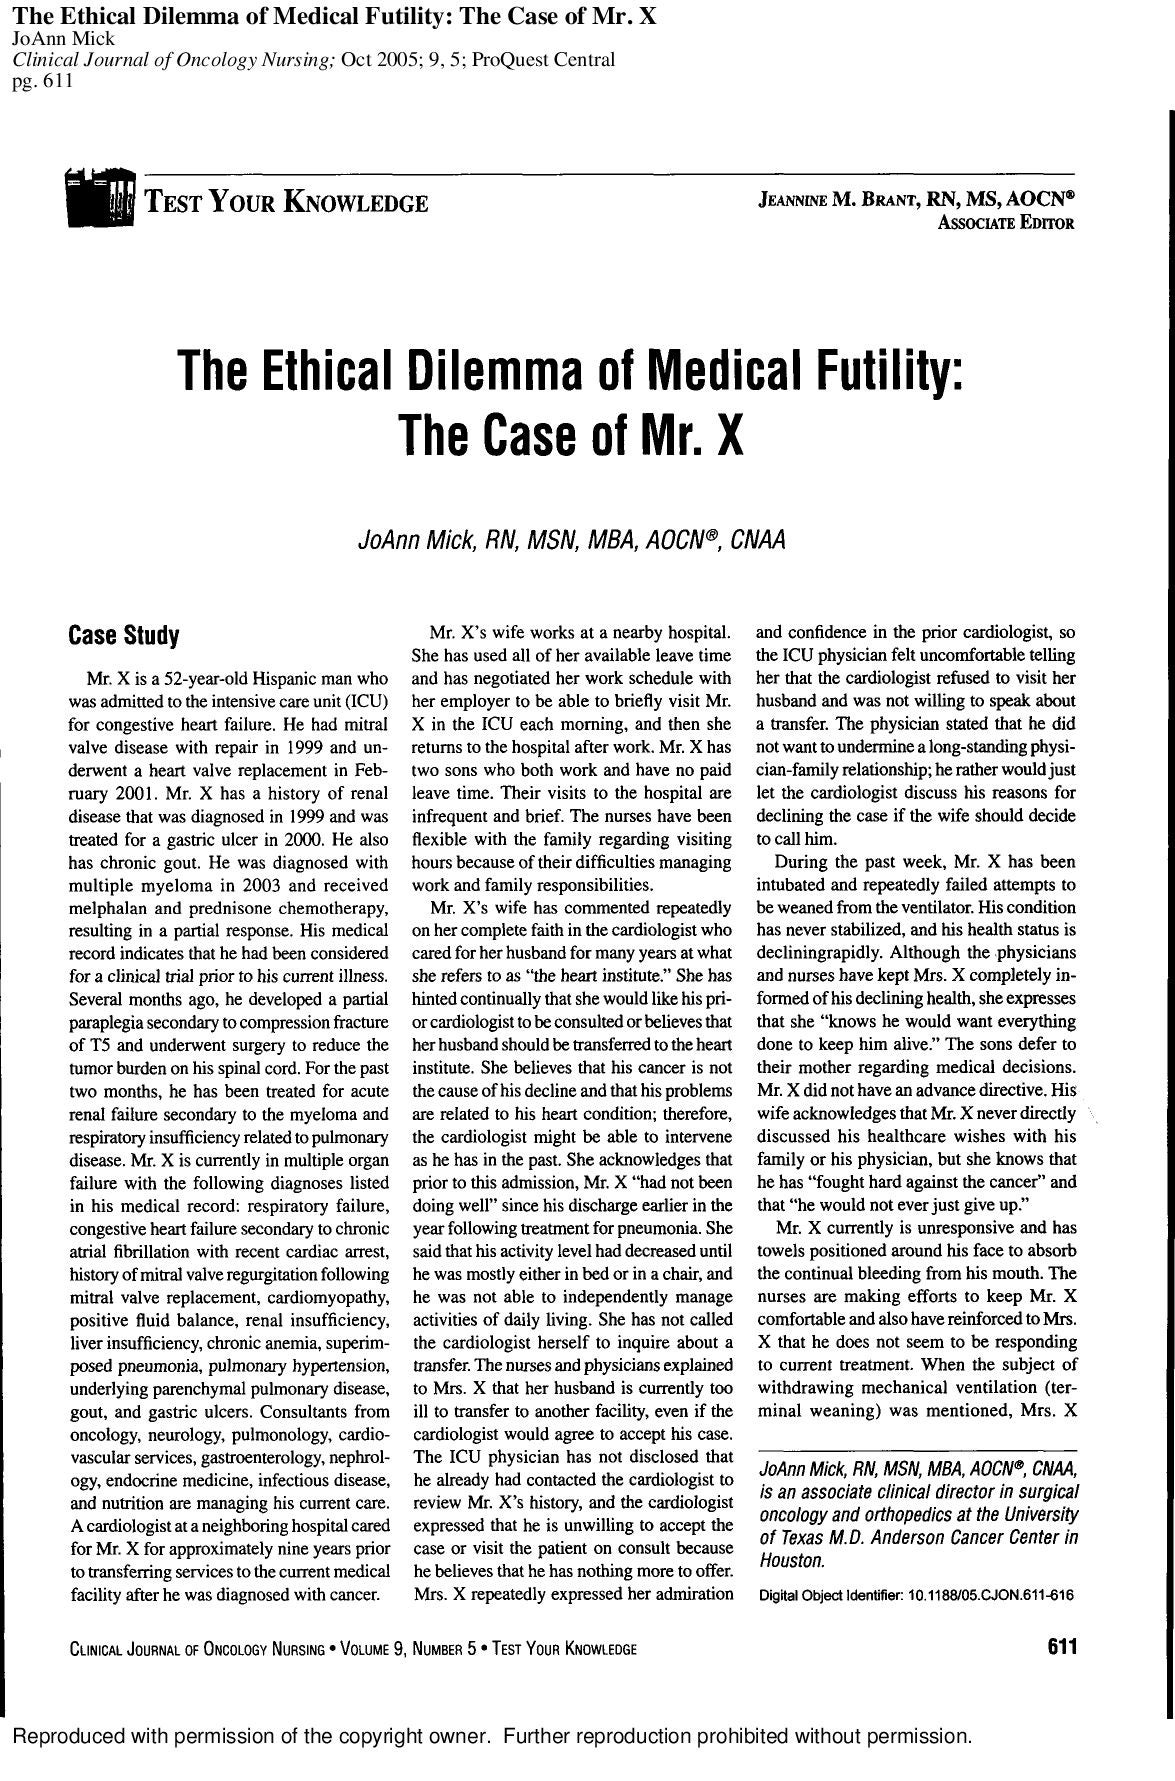 a study of the ethical dilemma in the case of mr m Cases written through the stanford graduate school of business (gsb) that highlight challenges faced and innovations created by leading philanthropic institutions and individuals.